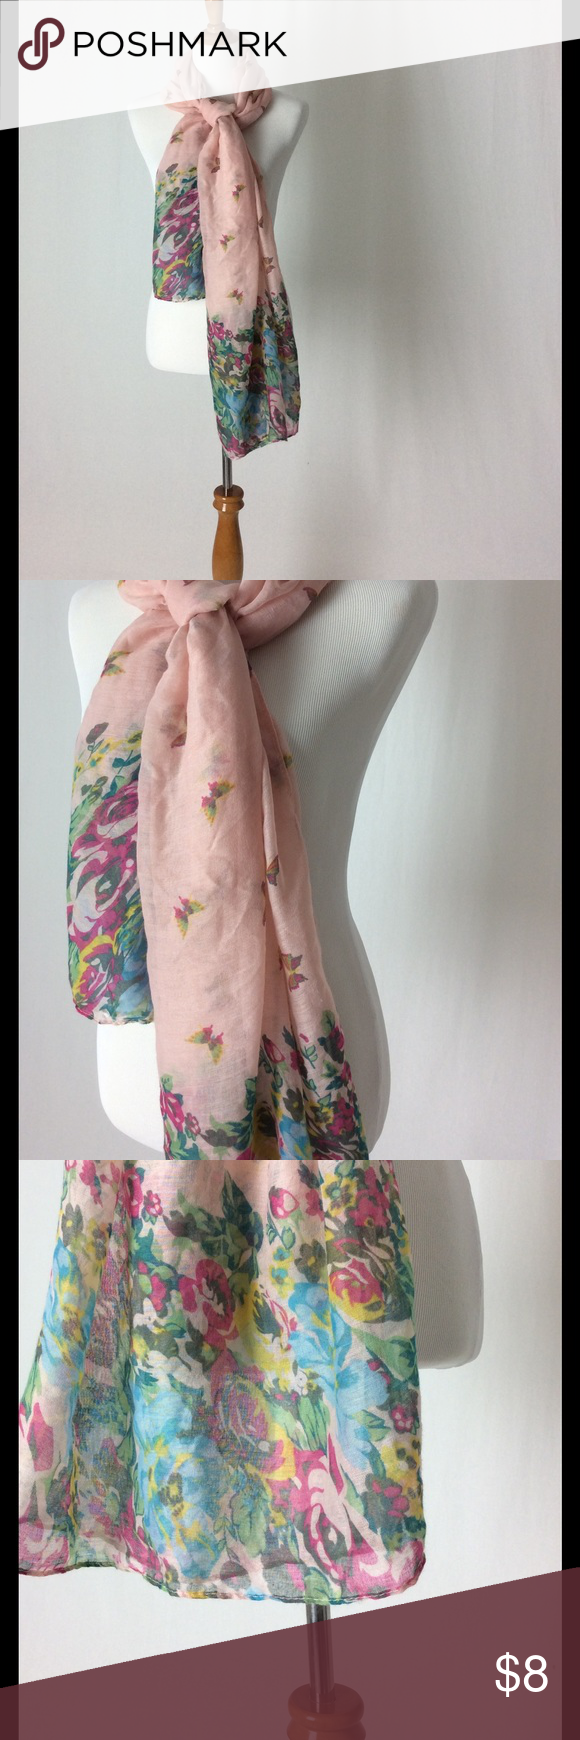 Pink butterfly spring scarf with flowers No snags. Pretty easter spring scarf with flowers and butterflies Accessories Scarves & Wraps